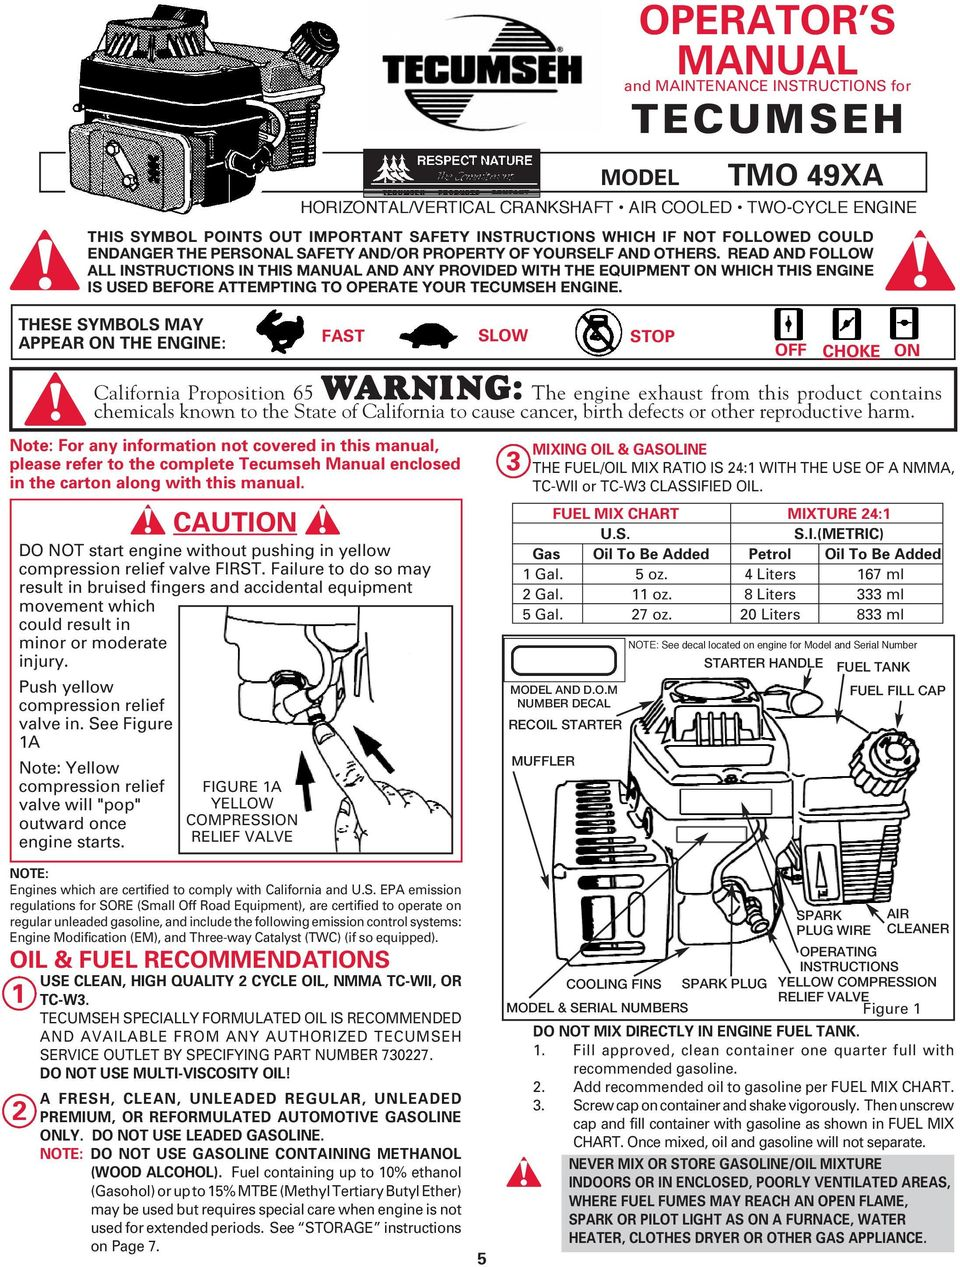 Operating Parts Manual 20 Hp Pdf Tecumseh Engine Diagrams Car Tuning These Symbols May Appear On The Fast Slow Stop California Proposition 65 Warning